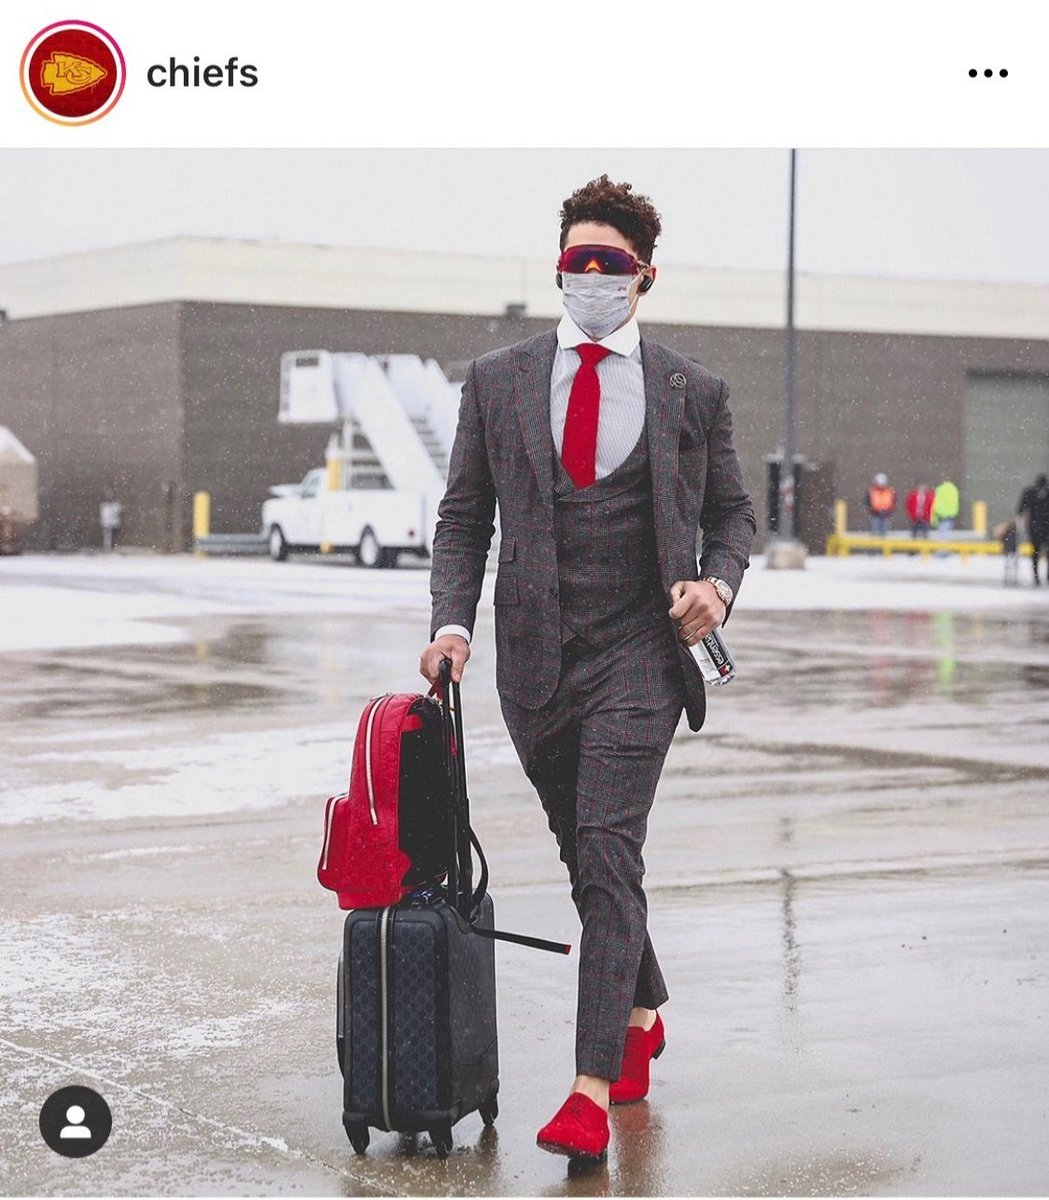 """Just because I had more than one person send me this photo and comment on my """"Mahomes style"""" shoes I had to share! Happy Valentine's Day @Chiefs fans! ❤❤❤❤🏈  #KCChiefs @CarriesHallmark #ChiefsKingdom @PatrickMahomes"""